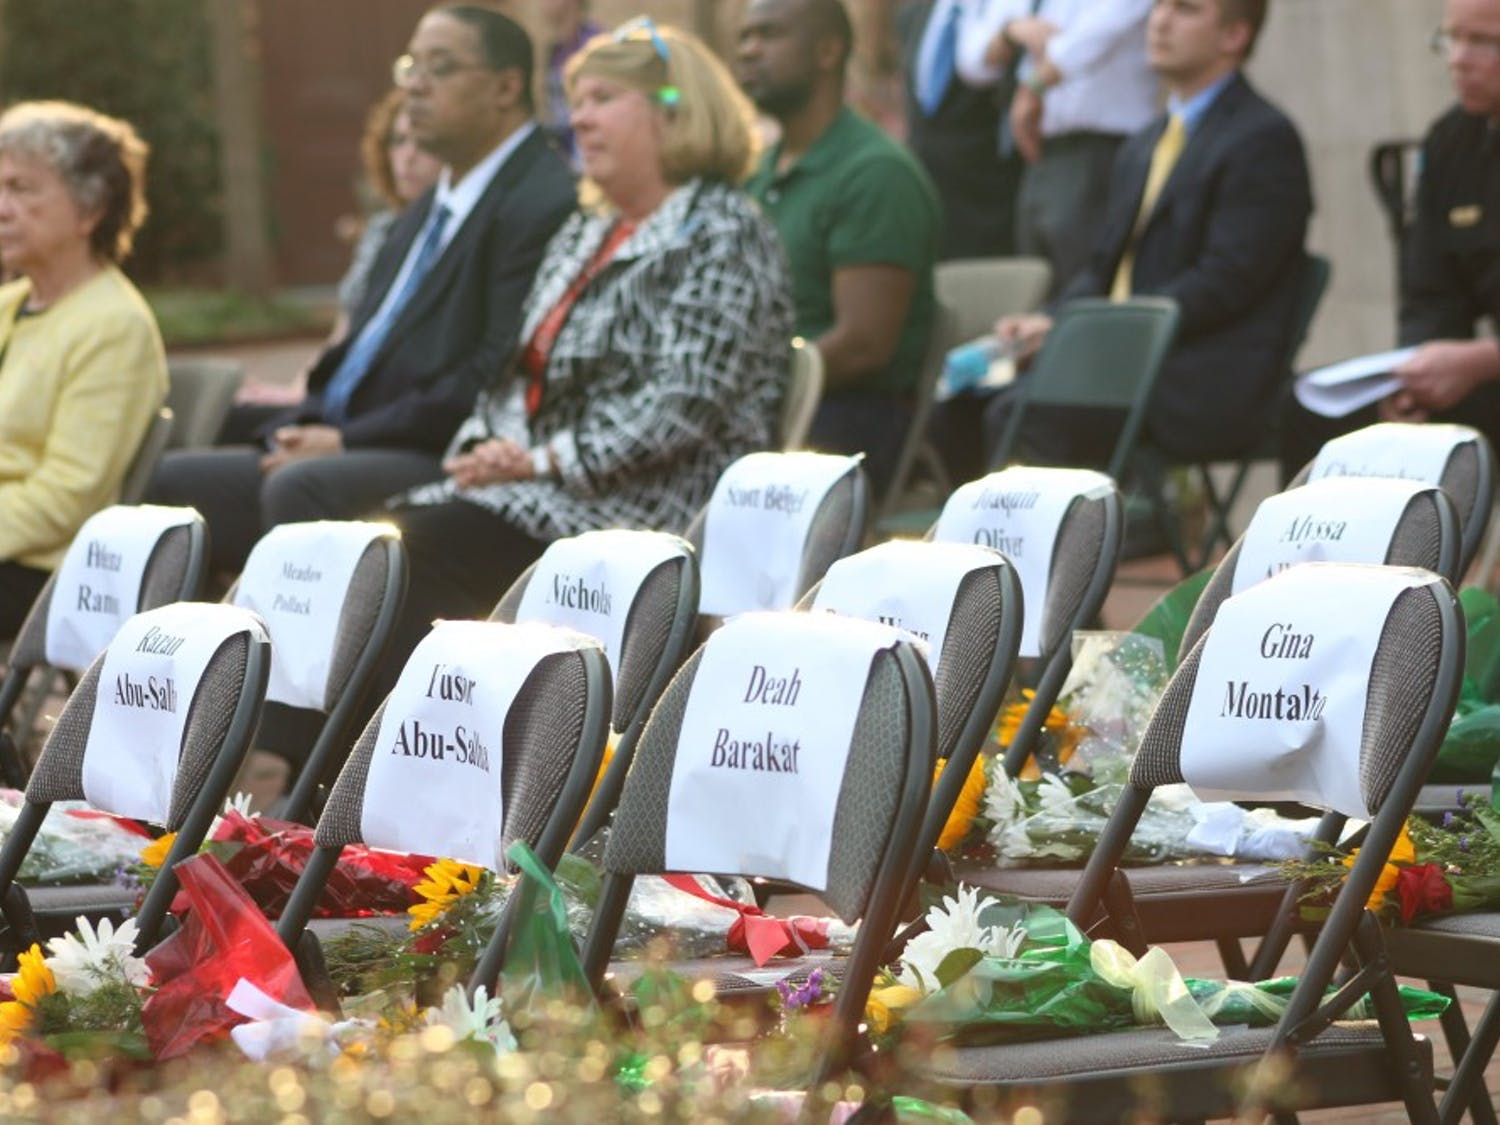 Seats and flowers were set out on stage in honor of the seventeen students of Marjory Stoneman Douglas High School during the UNC Rally for Our Lives event in Polk Place on Wednesday evening.